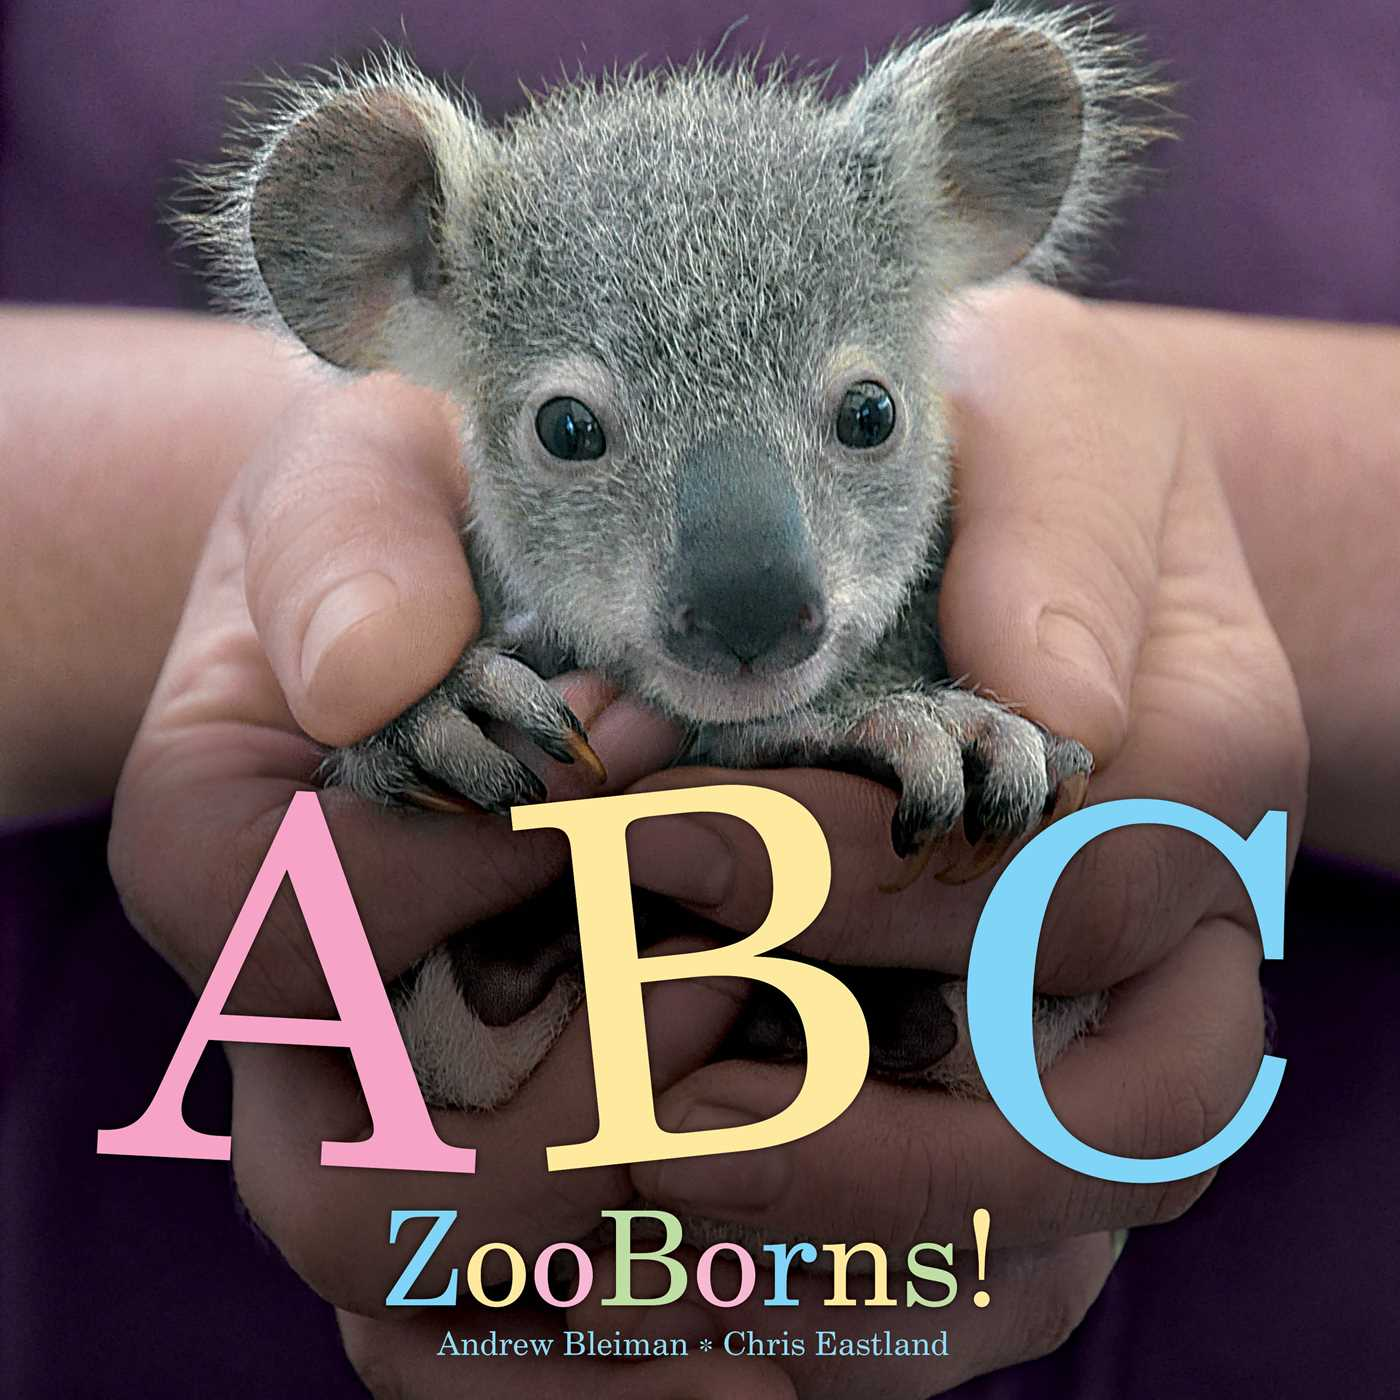 Abc-zooborns!-9781442443716_hr